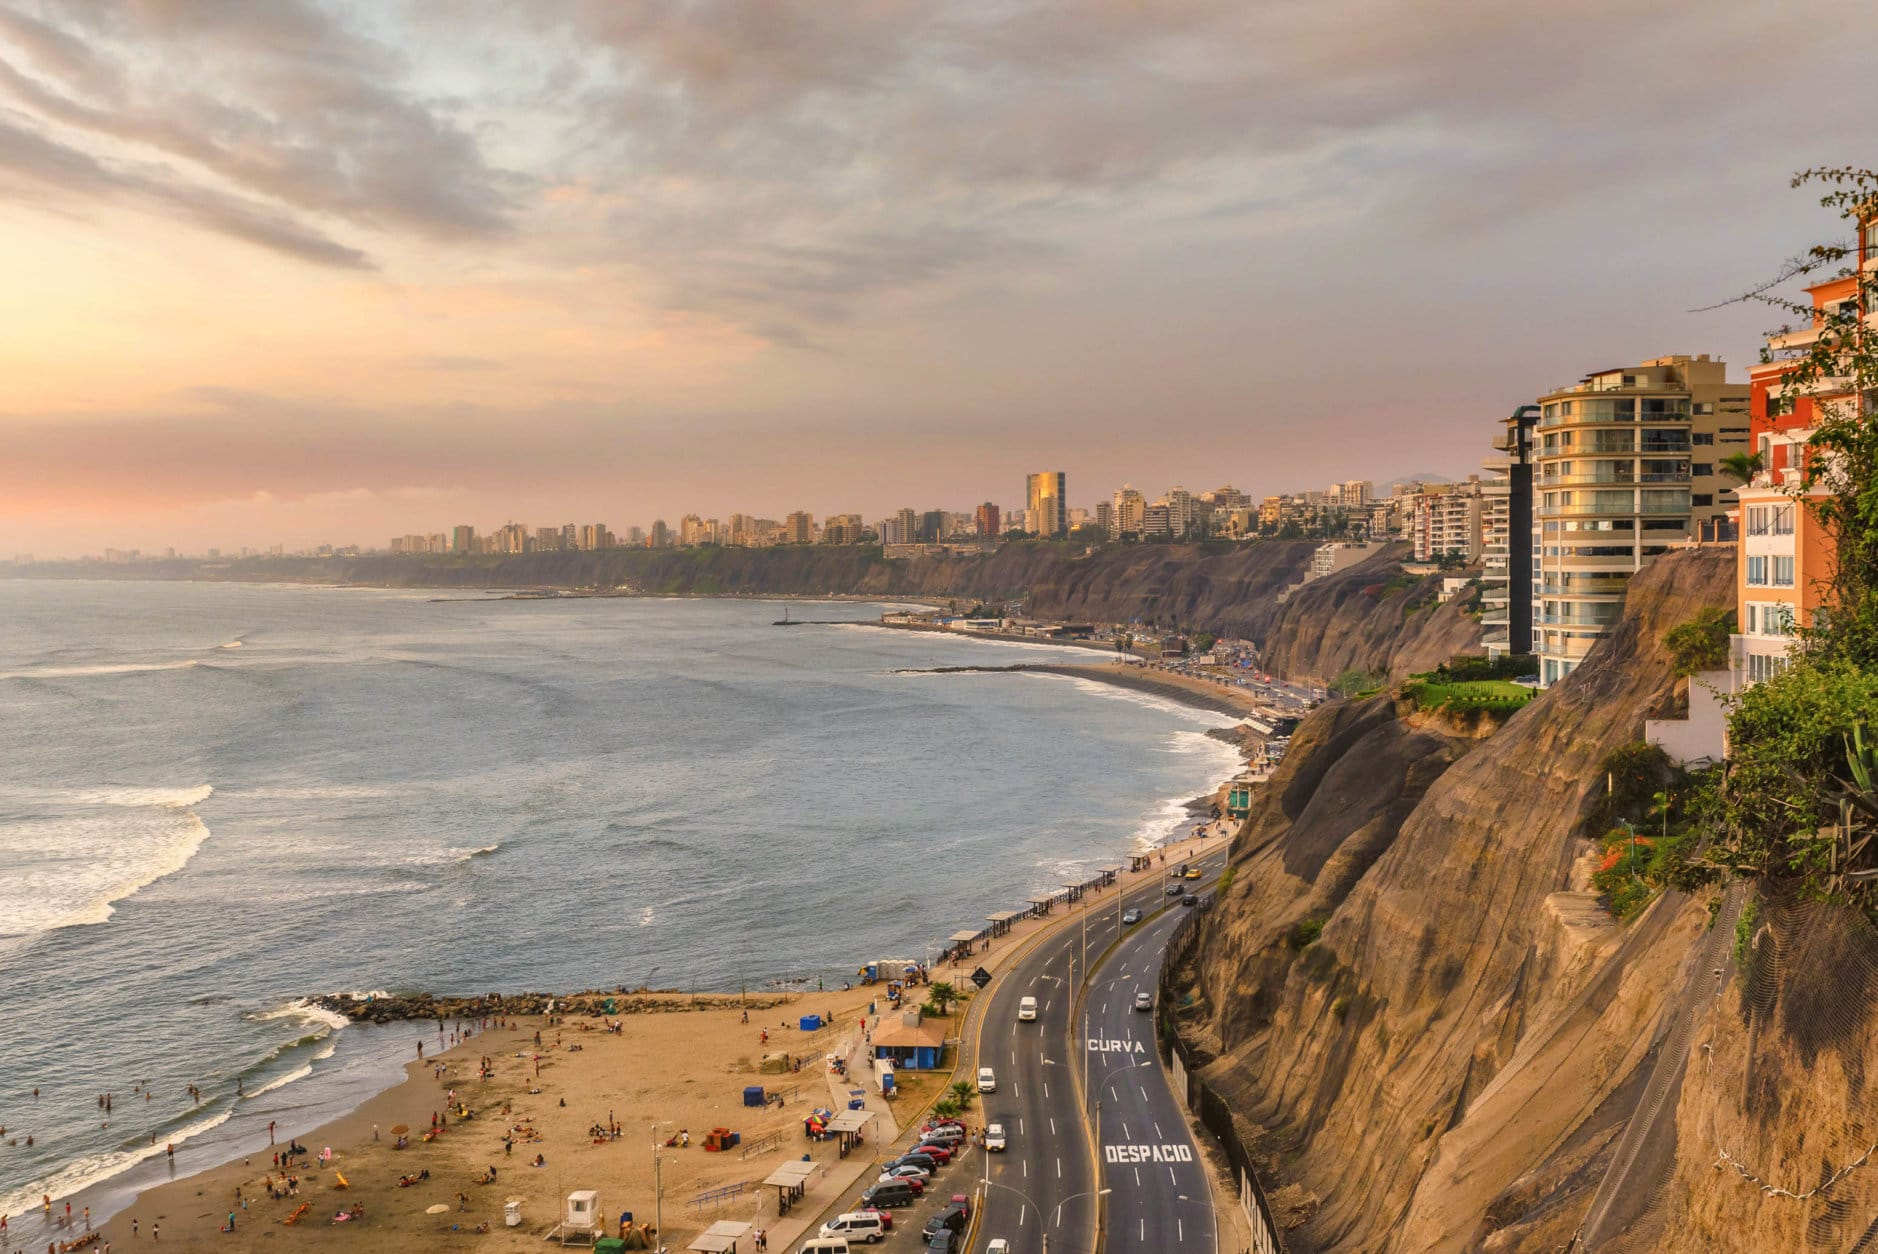 The Pacific coast of Miraflores in Lima, Peru. (Getty Images/iStockphoto/DVrcan)